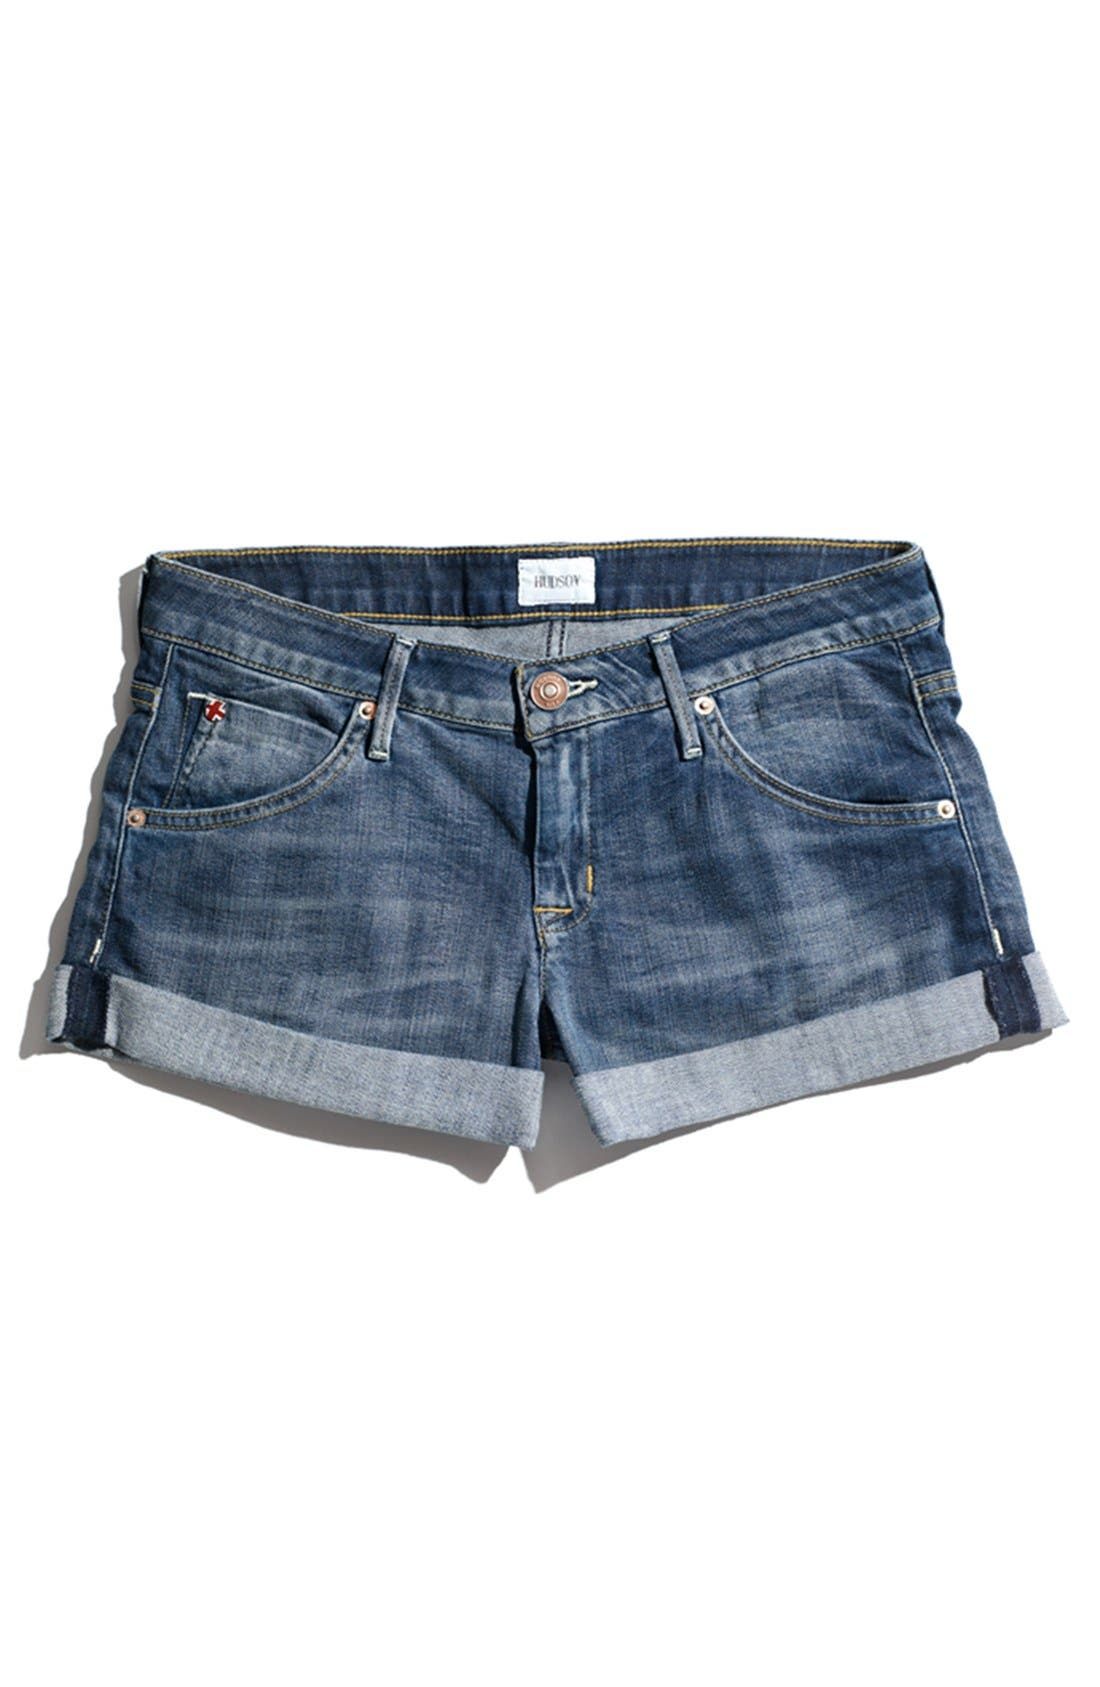 Cuff Denim Shorts,                             Alternate thumbnail 4, color,